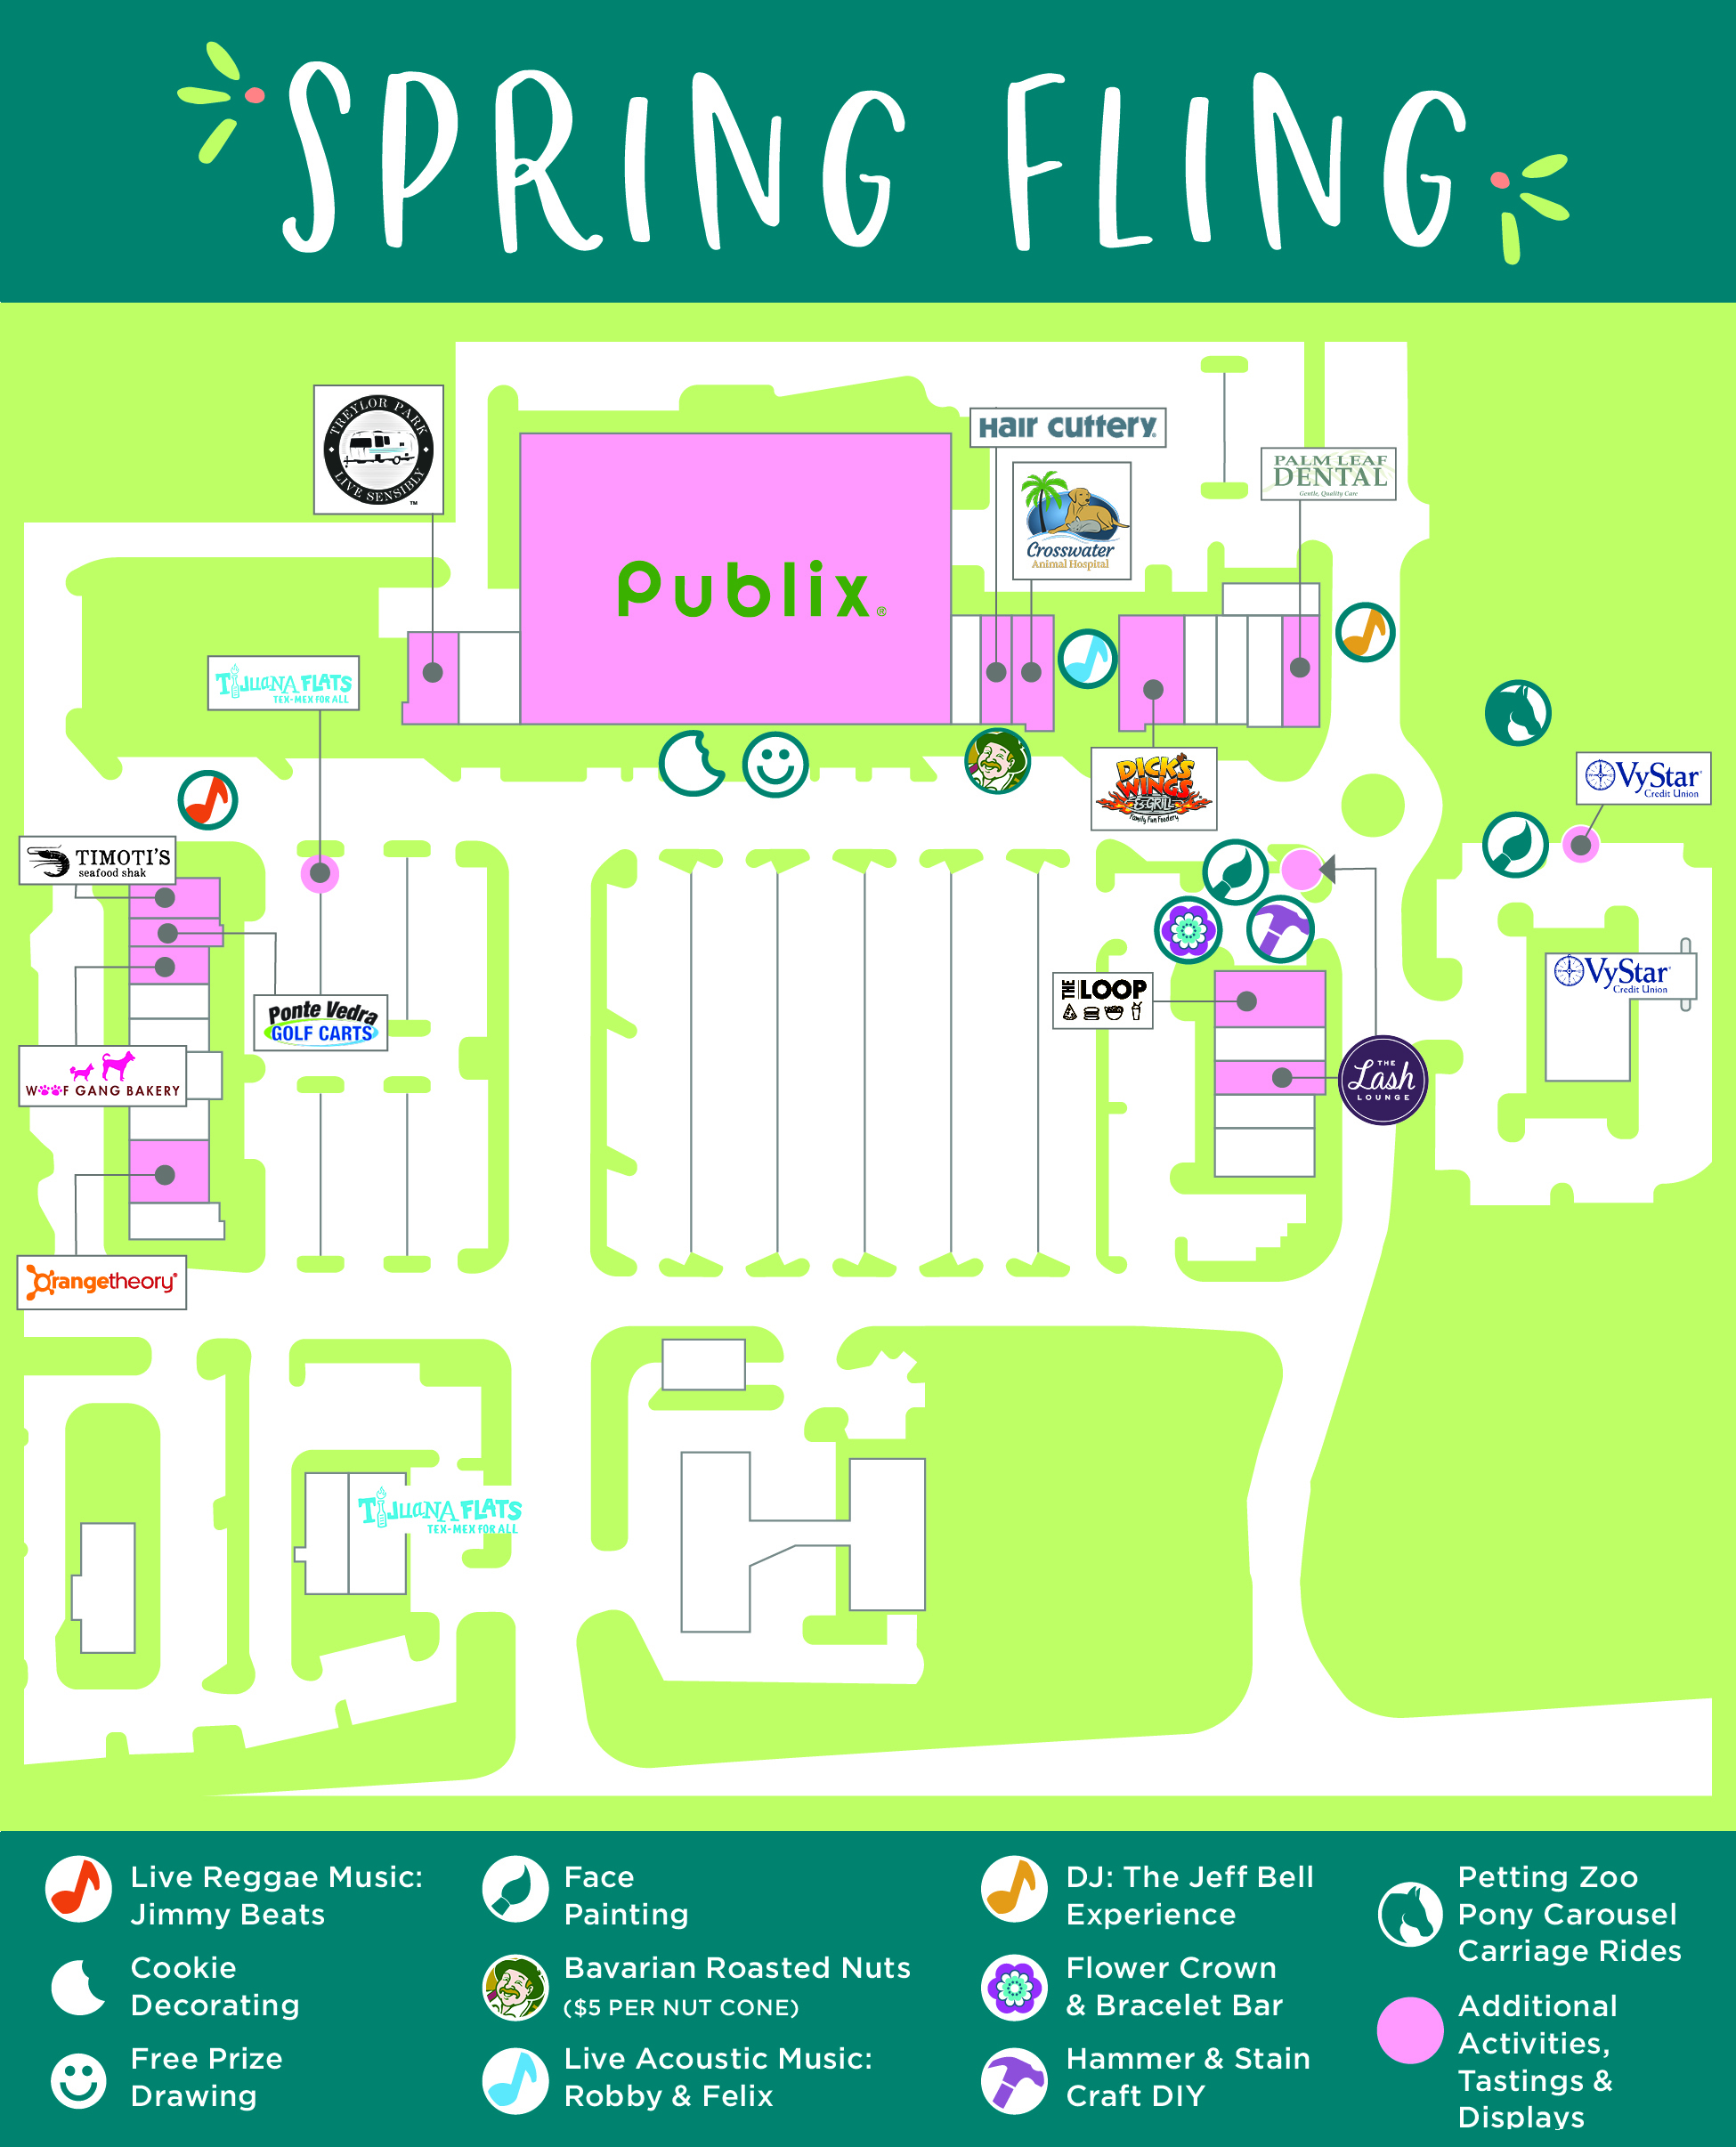 Directory Map of Spring Fling Activities